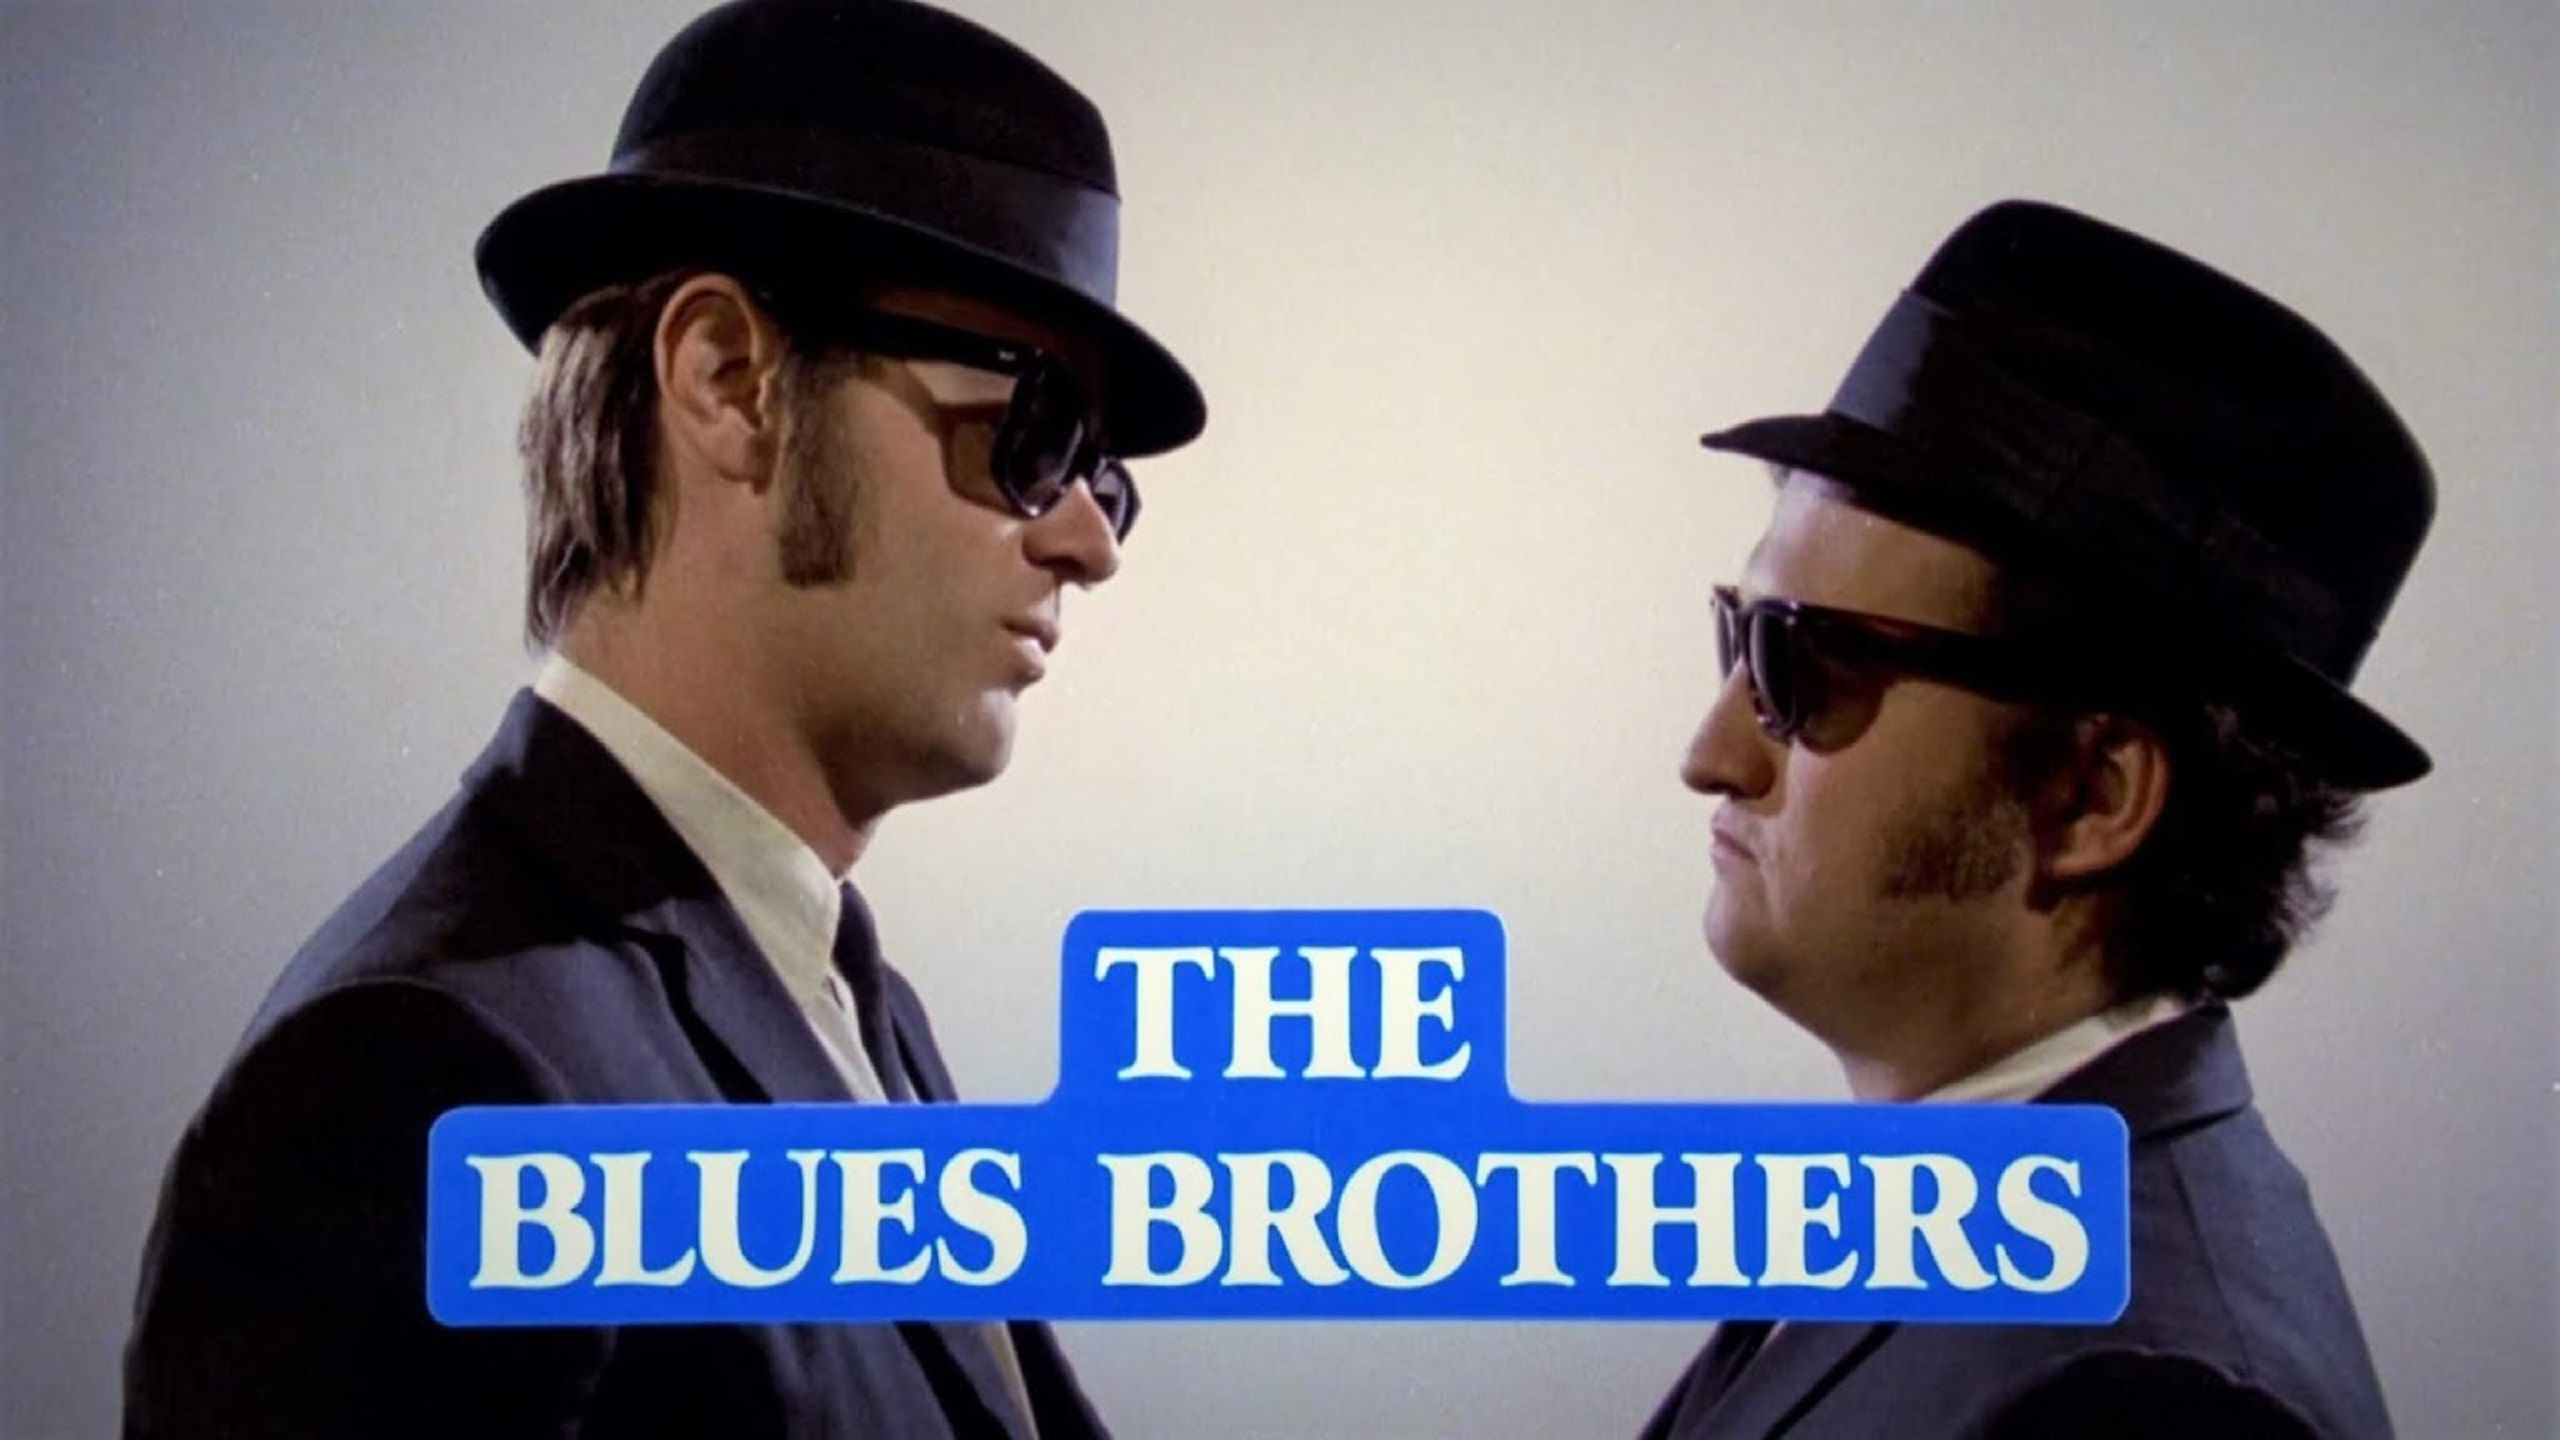 The Blues Brothers 1980 Dan Aykroyd and John Belushi